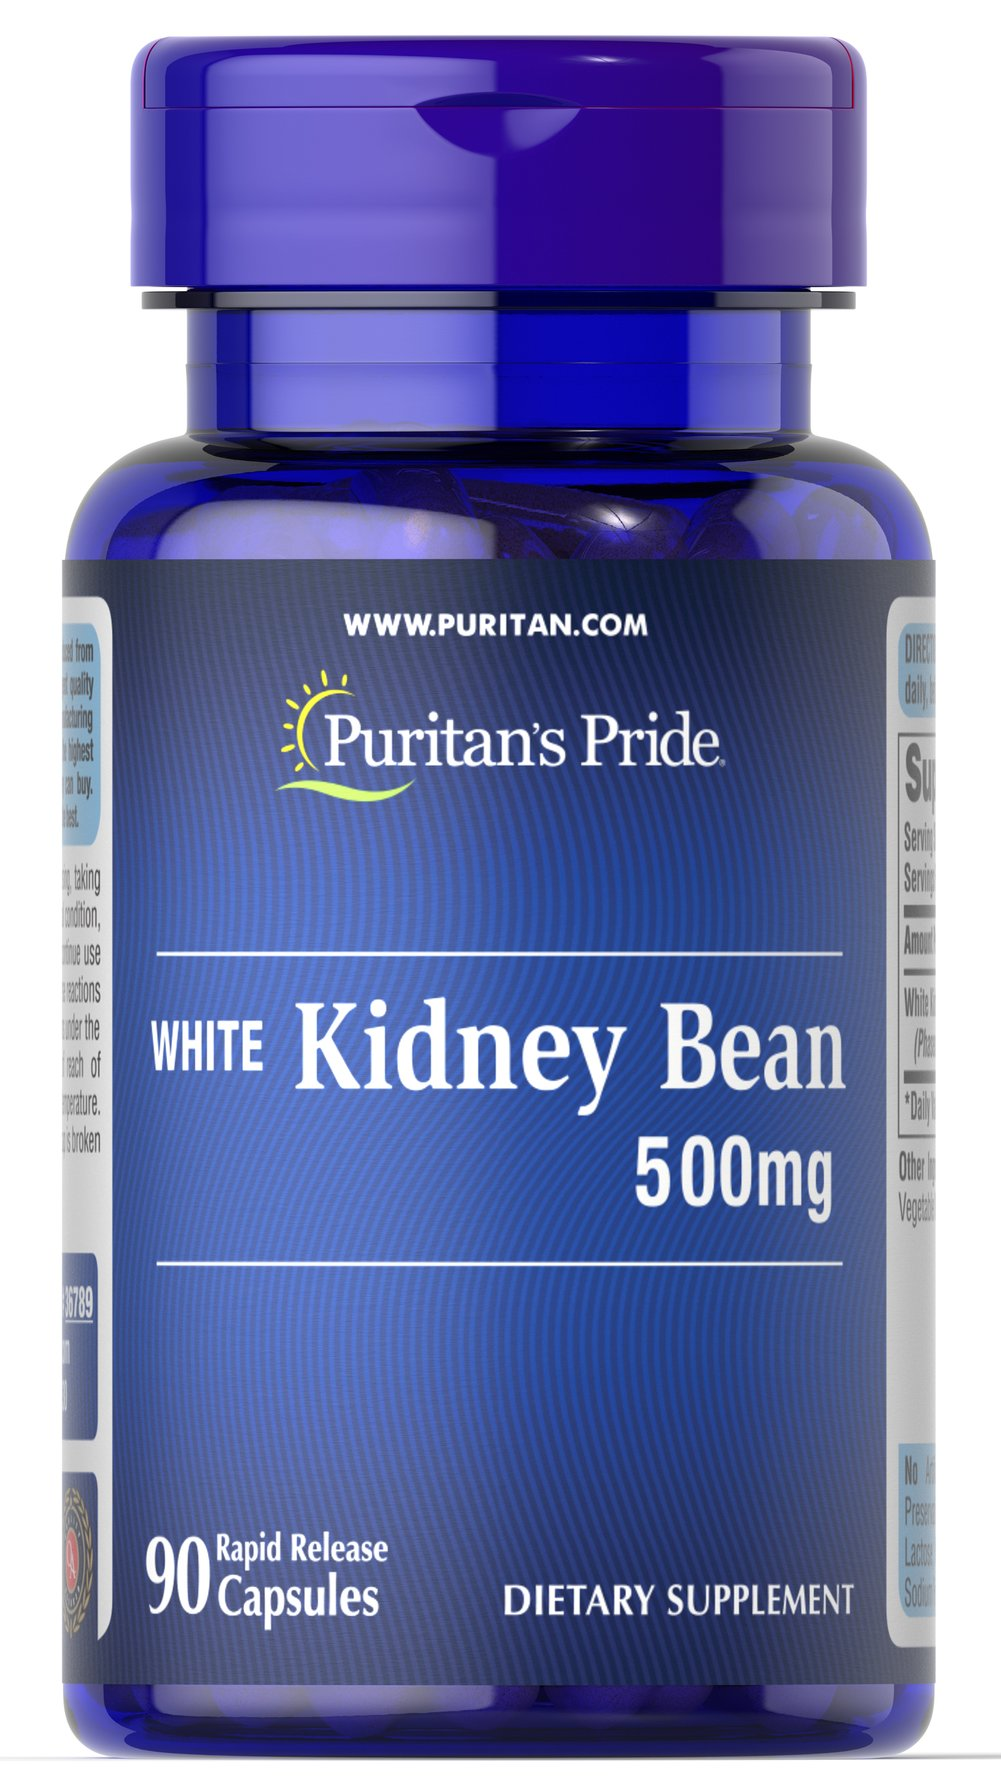 White Kidney Bean <p>We are proud to bring you White Kidney Bean.   Look to Puritan's Pride for high quality products and great nutrition at the best possible prices. </p><p></p> 90 Capsules 500 mg $19.59